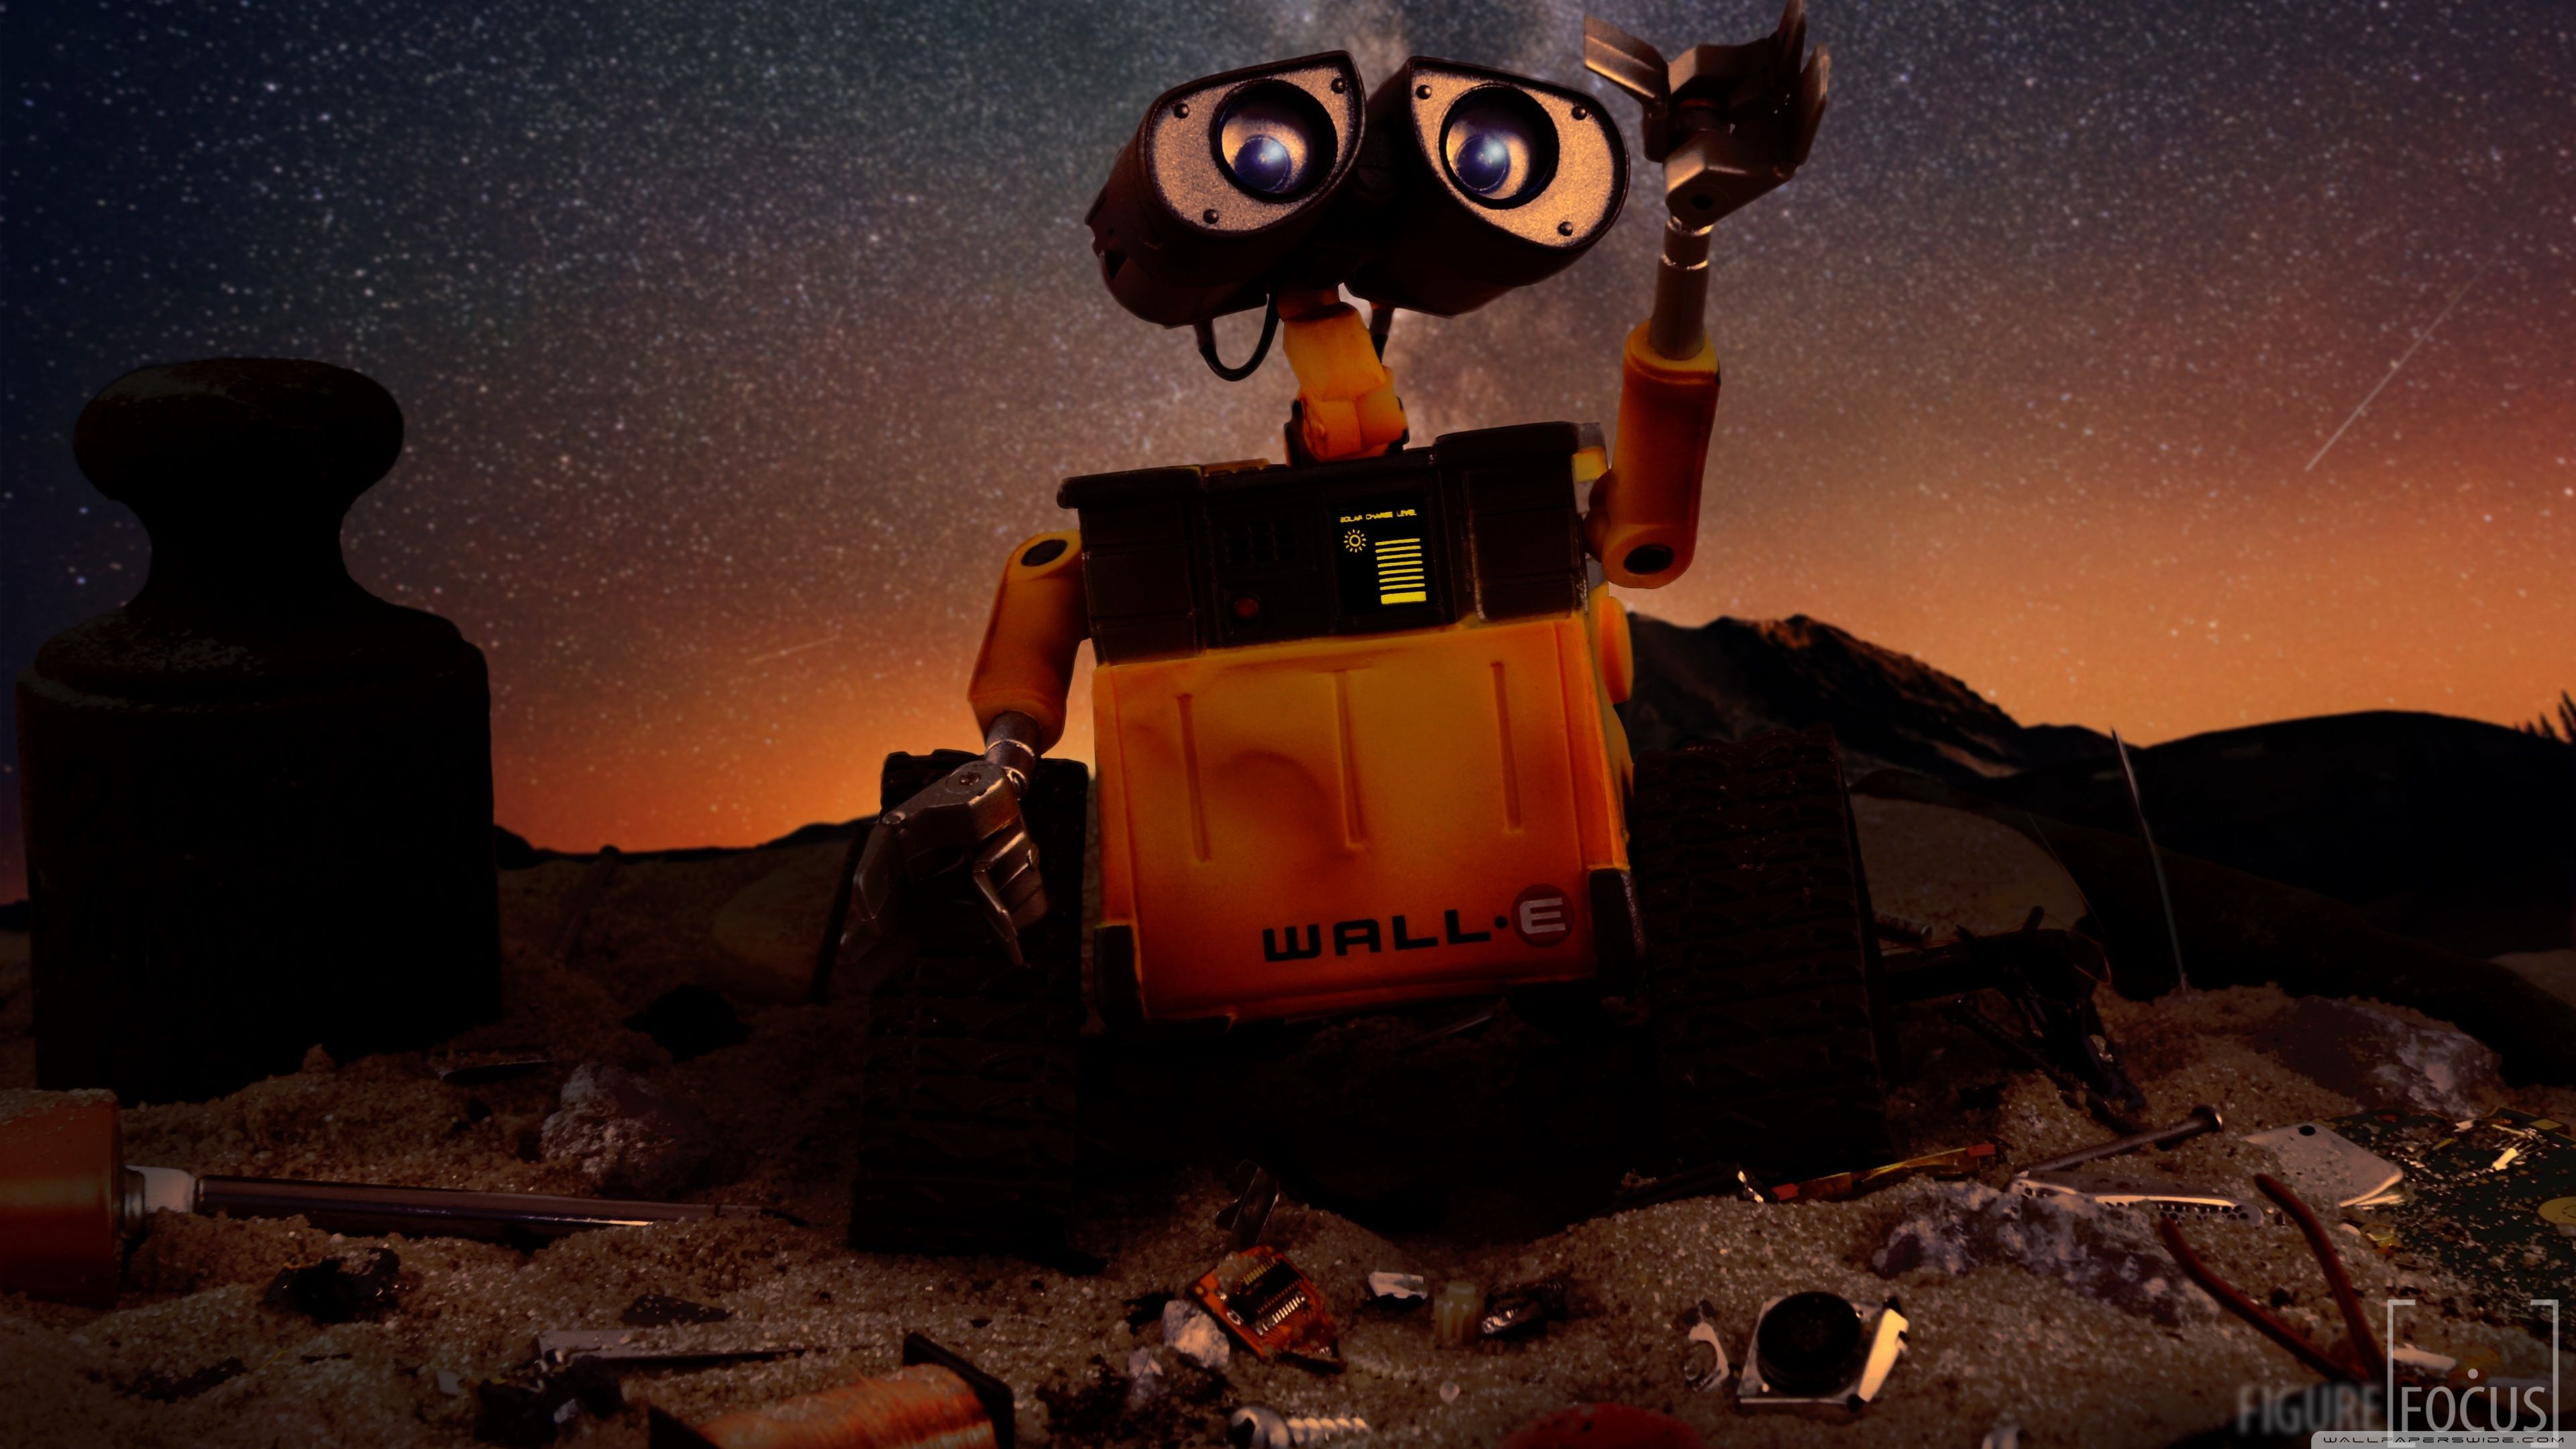 WALL-E Robot ❤ Fondo de escritorio 4K HD para TV 4K Ultra HD • Amplio